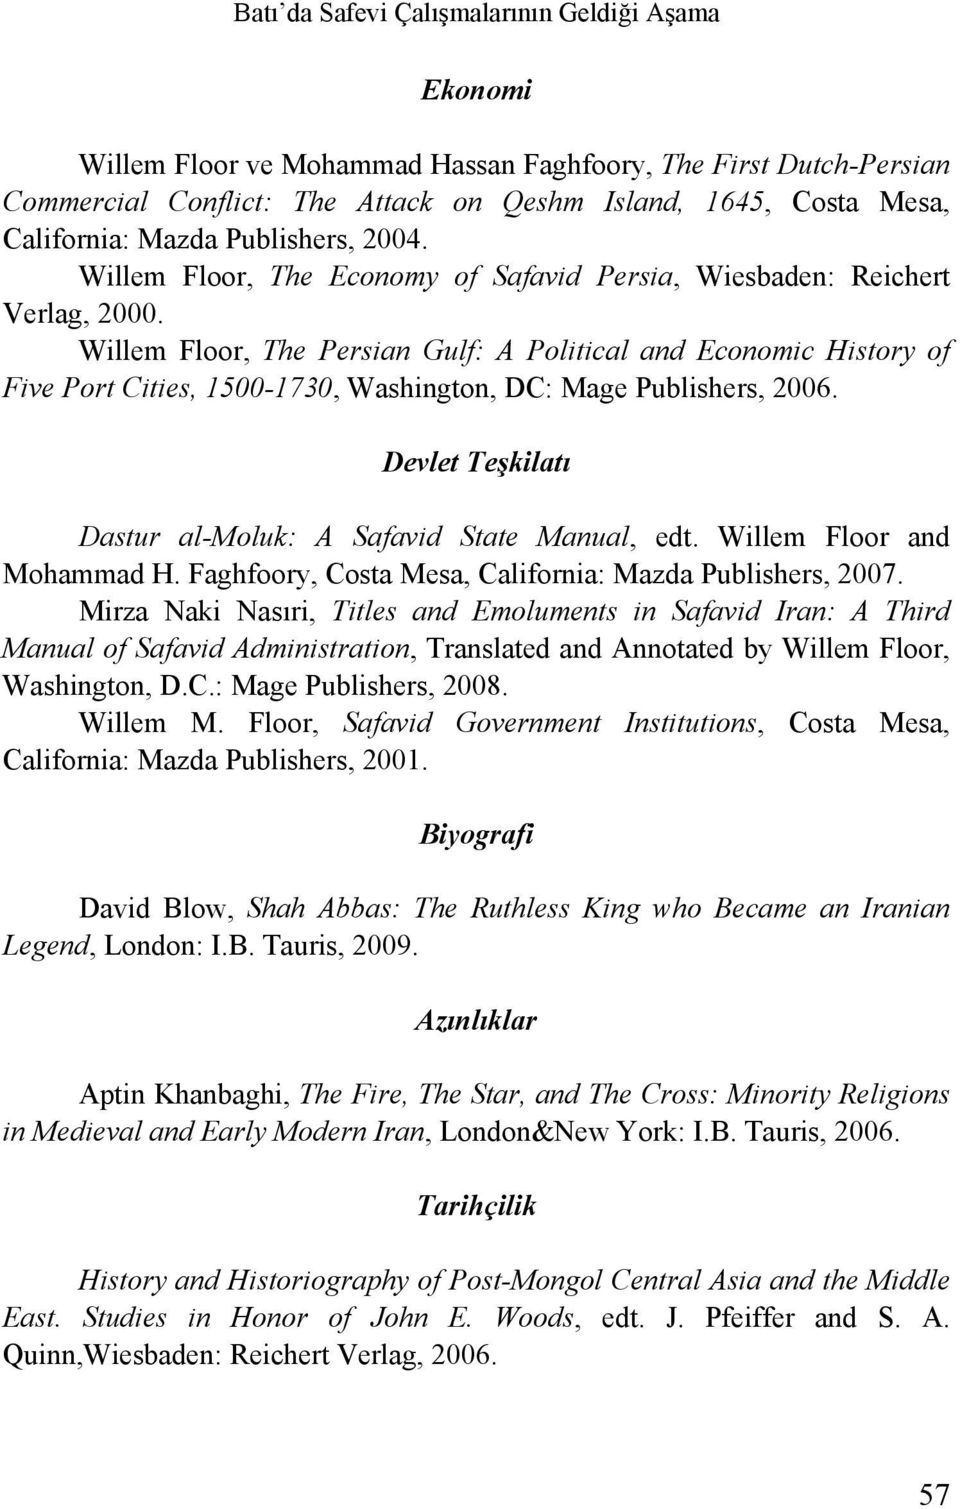 Willem Floor, The Persian Gulf: A Political and Economic History of Five Port Cities, 1500-1730, Washington, DC: Mage Publishers, 2006. Devlet Teşkilatı Dastur al-moluk: A Safavid State Manual, edt.